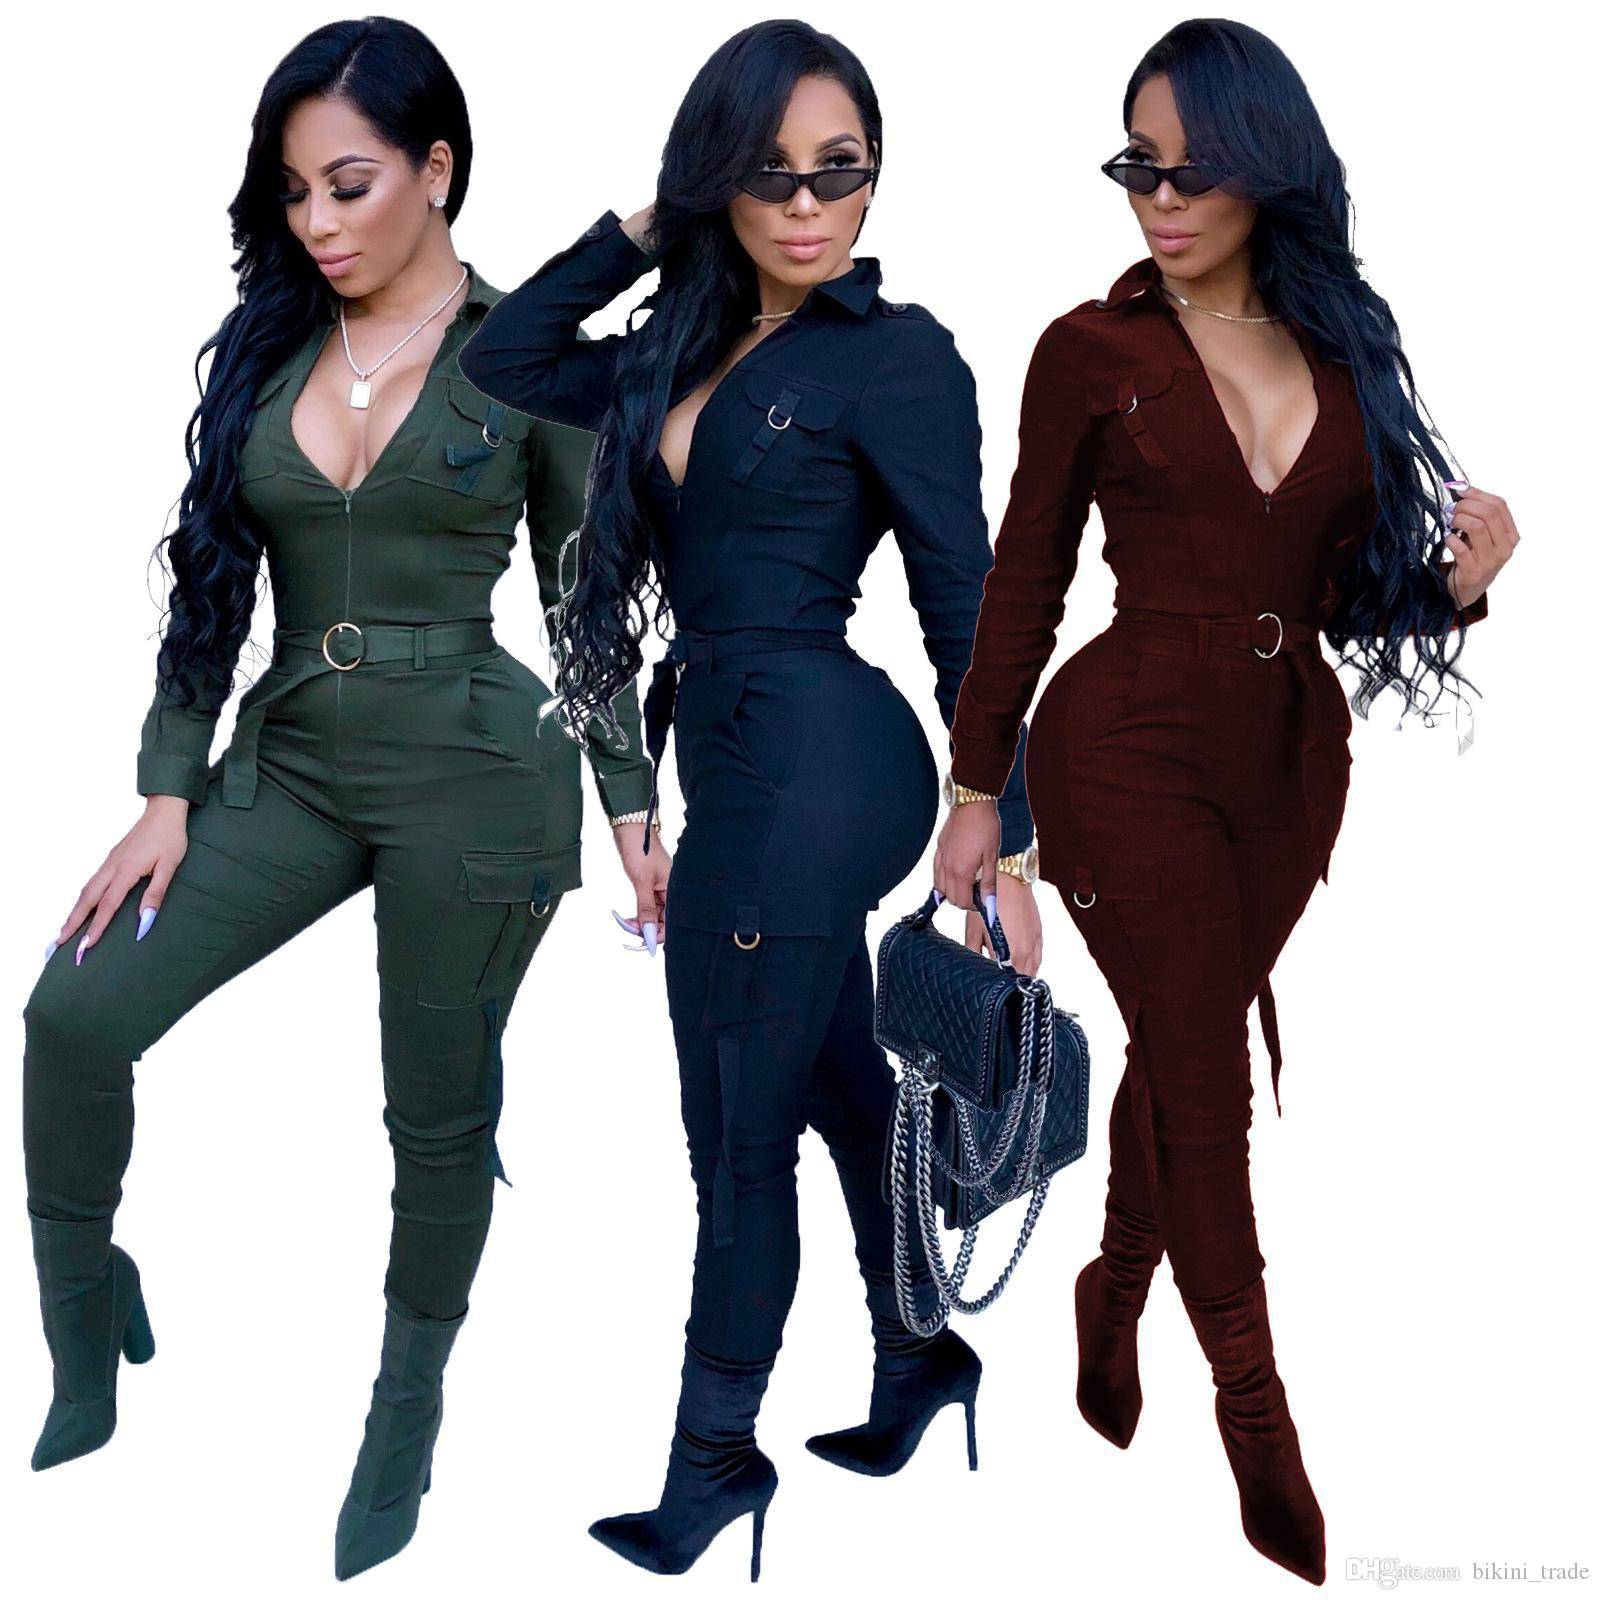 832aefbec830 2019 Solid Sexy Jumpsuits Women Autumn Long Sleeve Deep V Neck Skinny Party  Romper Sashes Full Length Casual Fashion Catsuit Best Selling From  Bikini trade